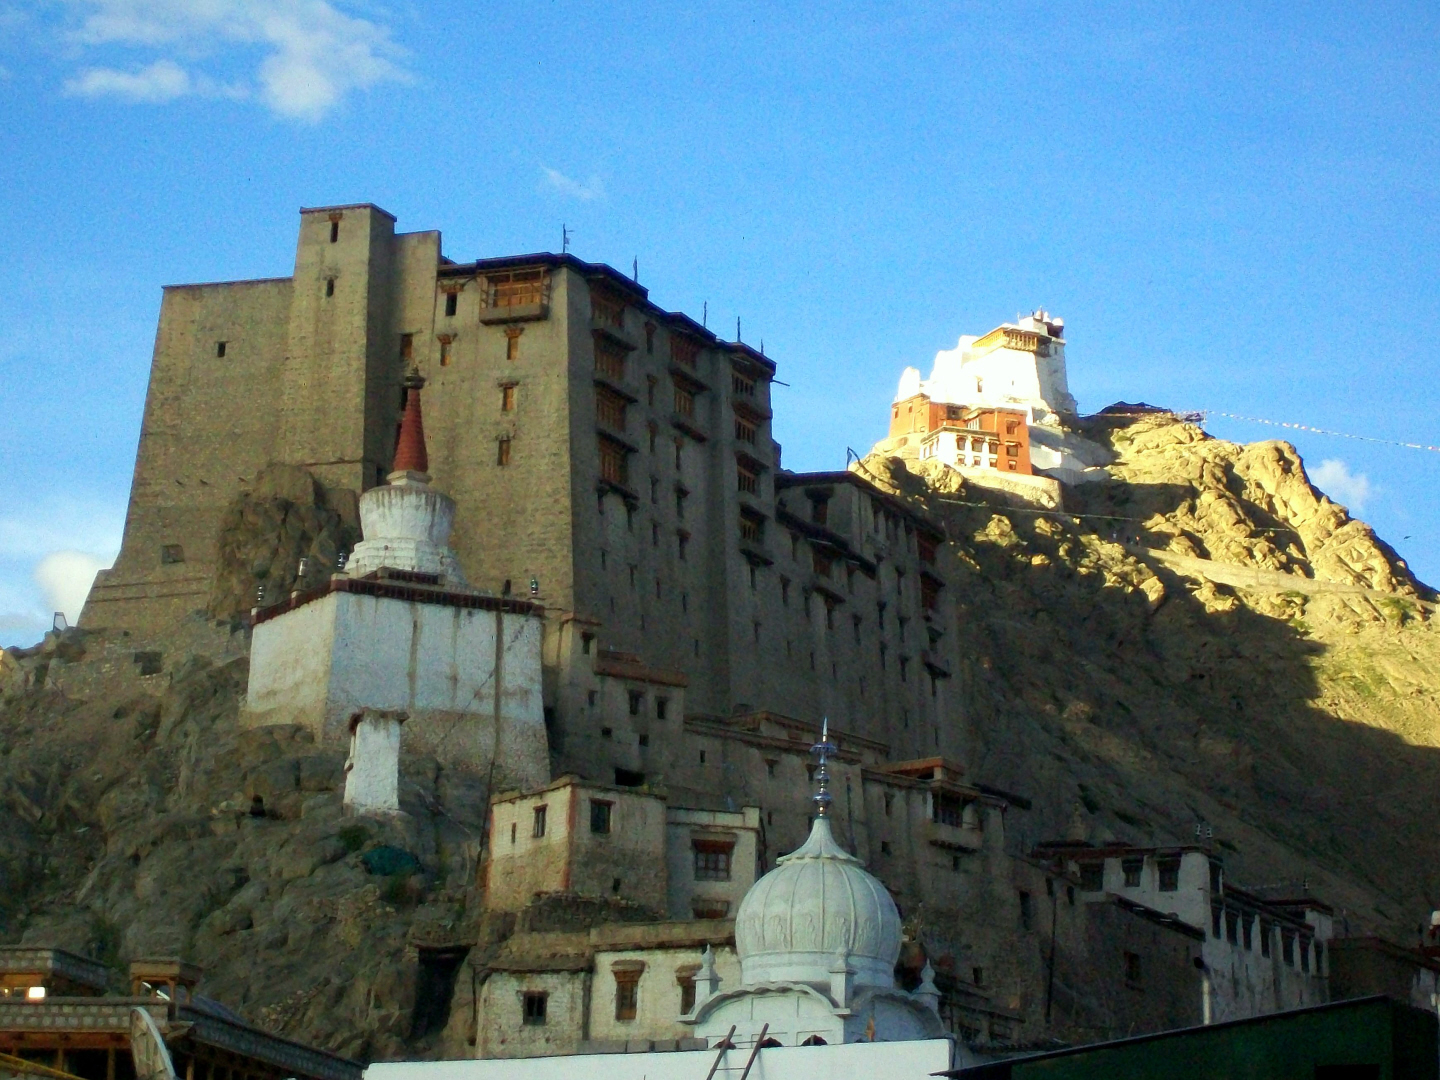 Foreground Dome of Sikh Gurdwara (not yet completed), Buddhist Stupa - Leh, Ladakh - India